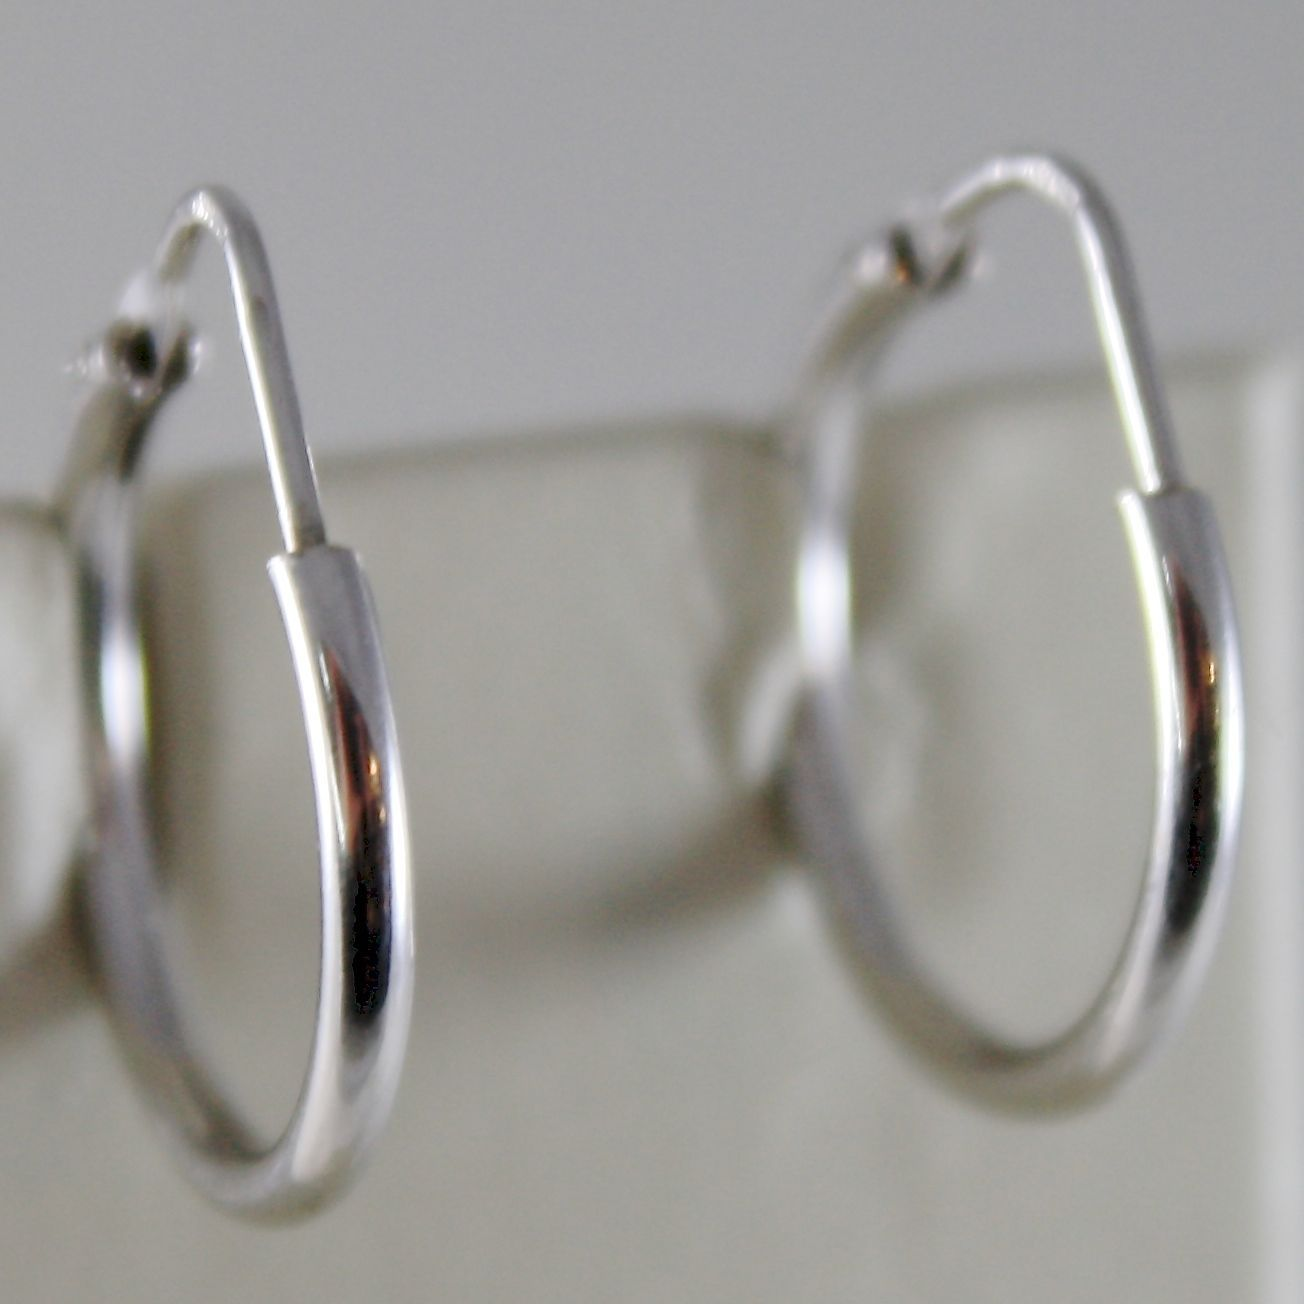 18K WHITE GOLD EARRINGS LITTLE CIRCLE HOOP 18 MM 0.71 IN DIAMETER MADE IN ITALY